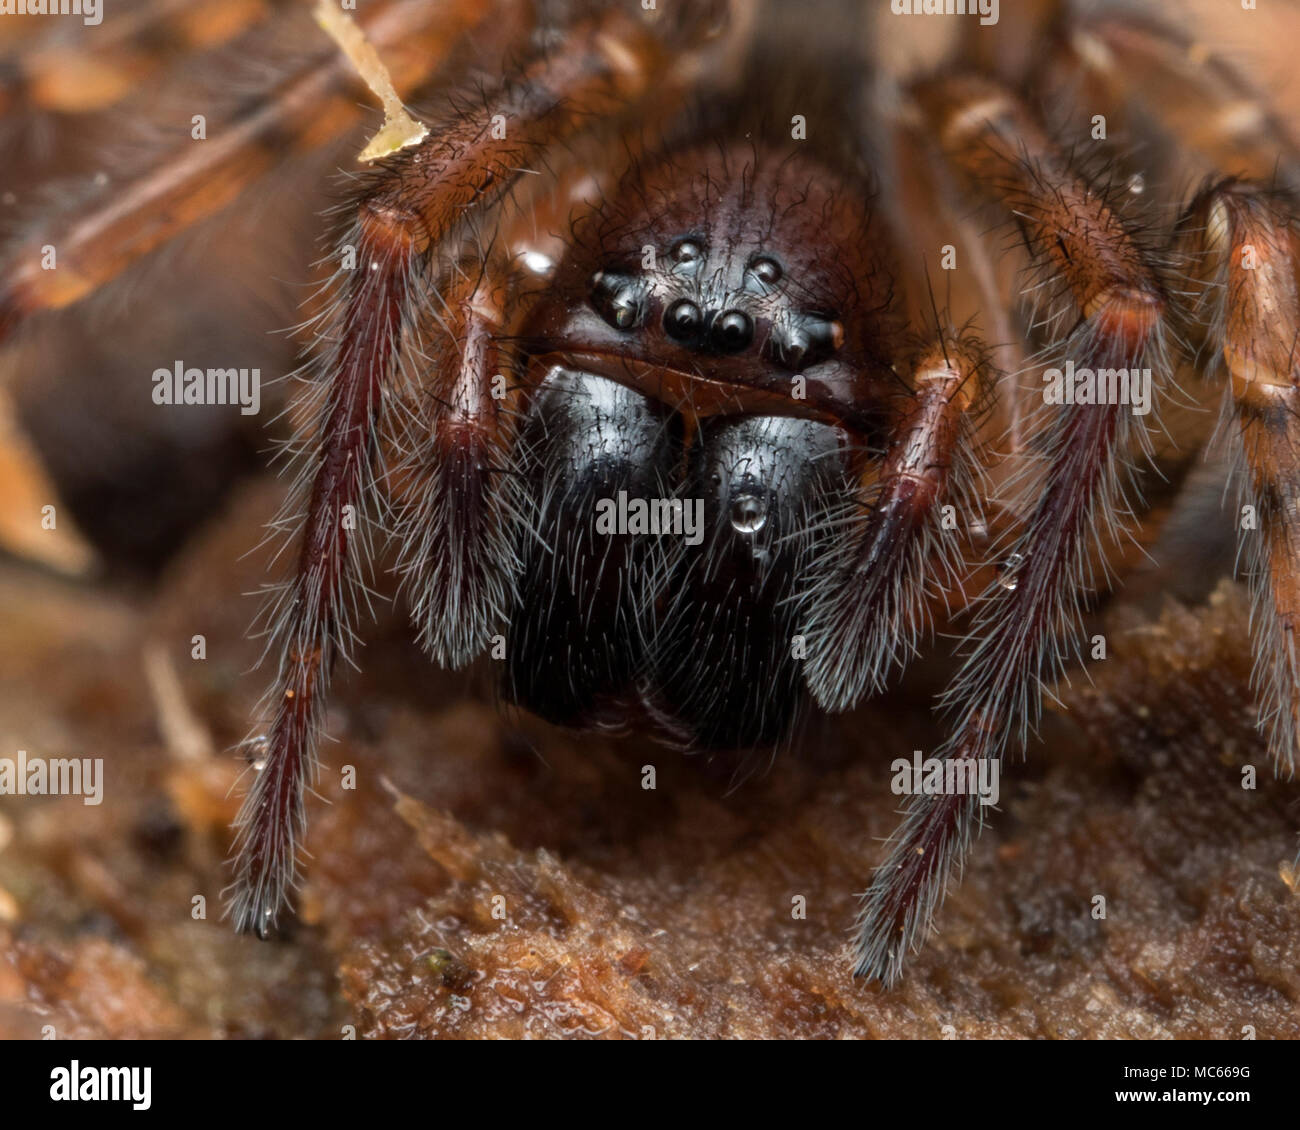 Lace-web Spider (Amaurobis sp.) underneath tree bark. Close up of the head. Tipperary, Ireland - Stock Image